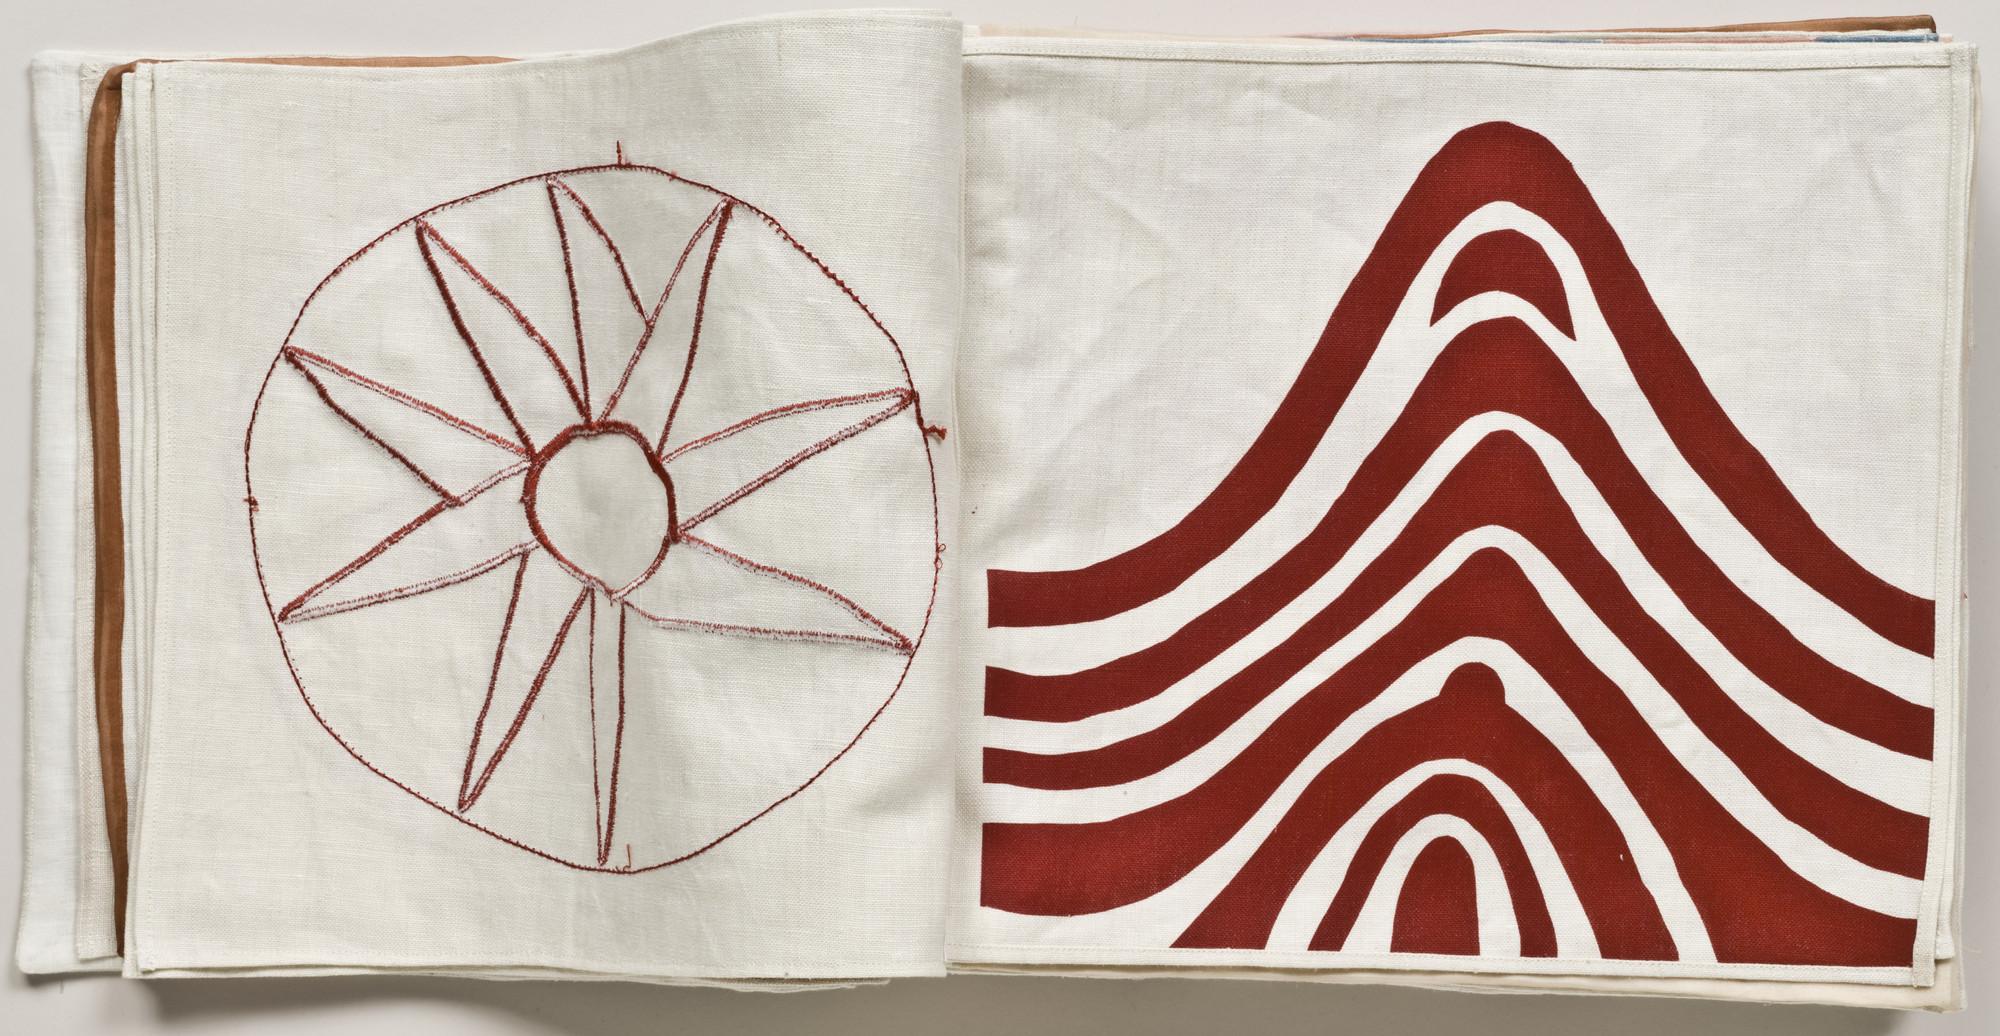 Louise Bourgeois. Untitled, no. 6 of 34, from the illustrated book, Ode à l'Oubli. 2004